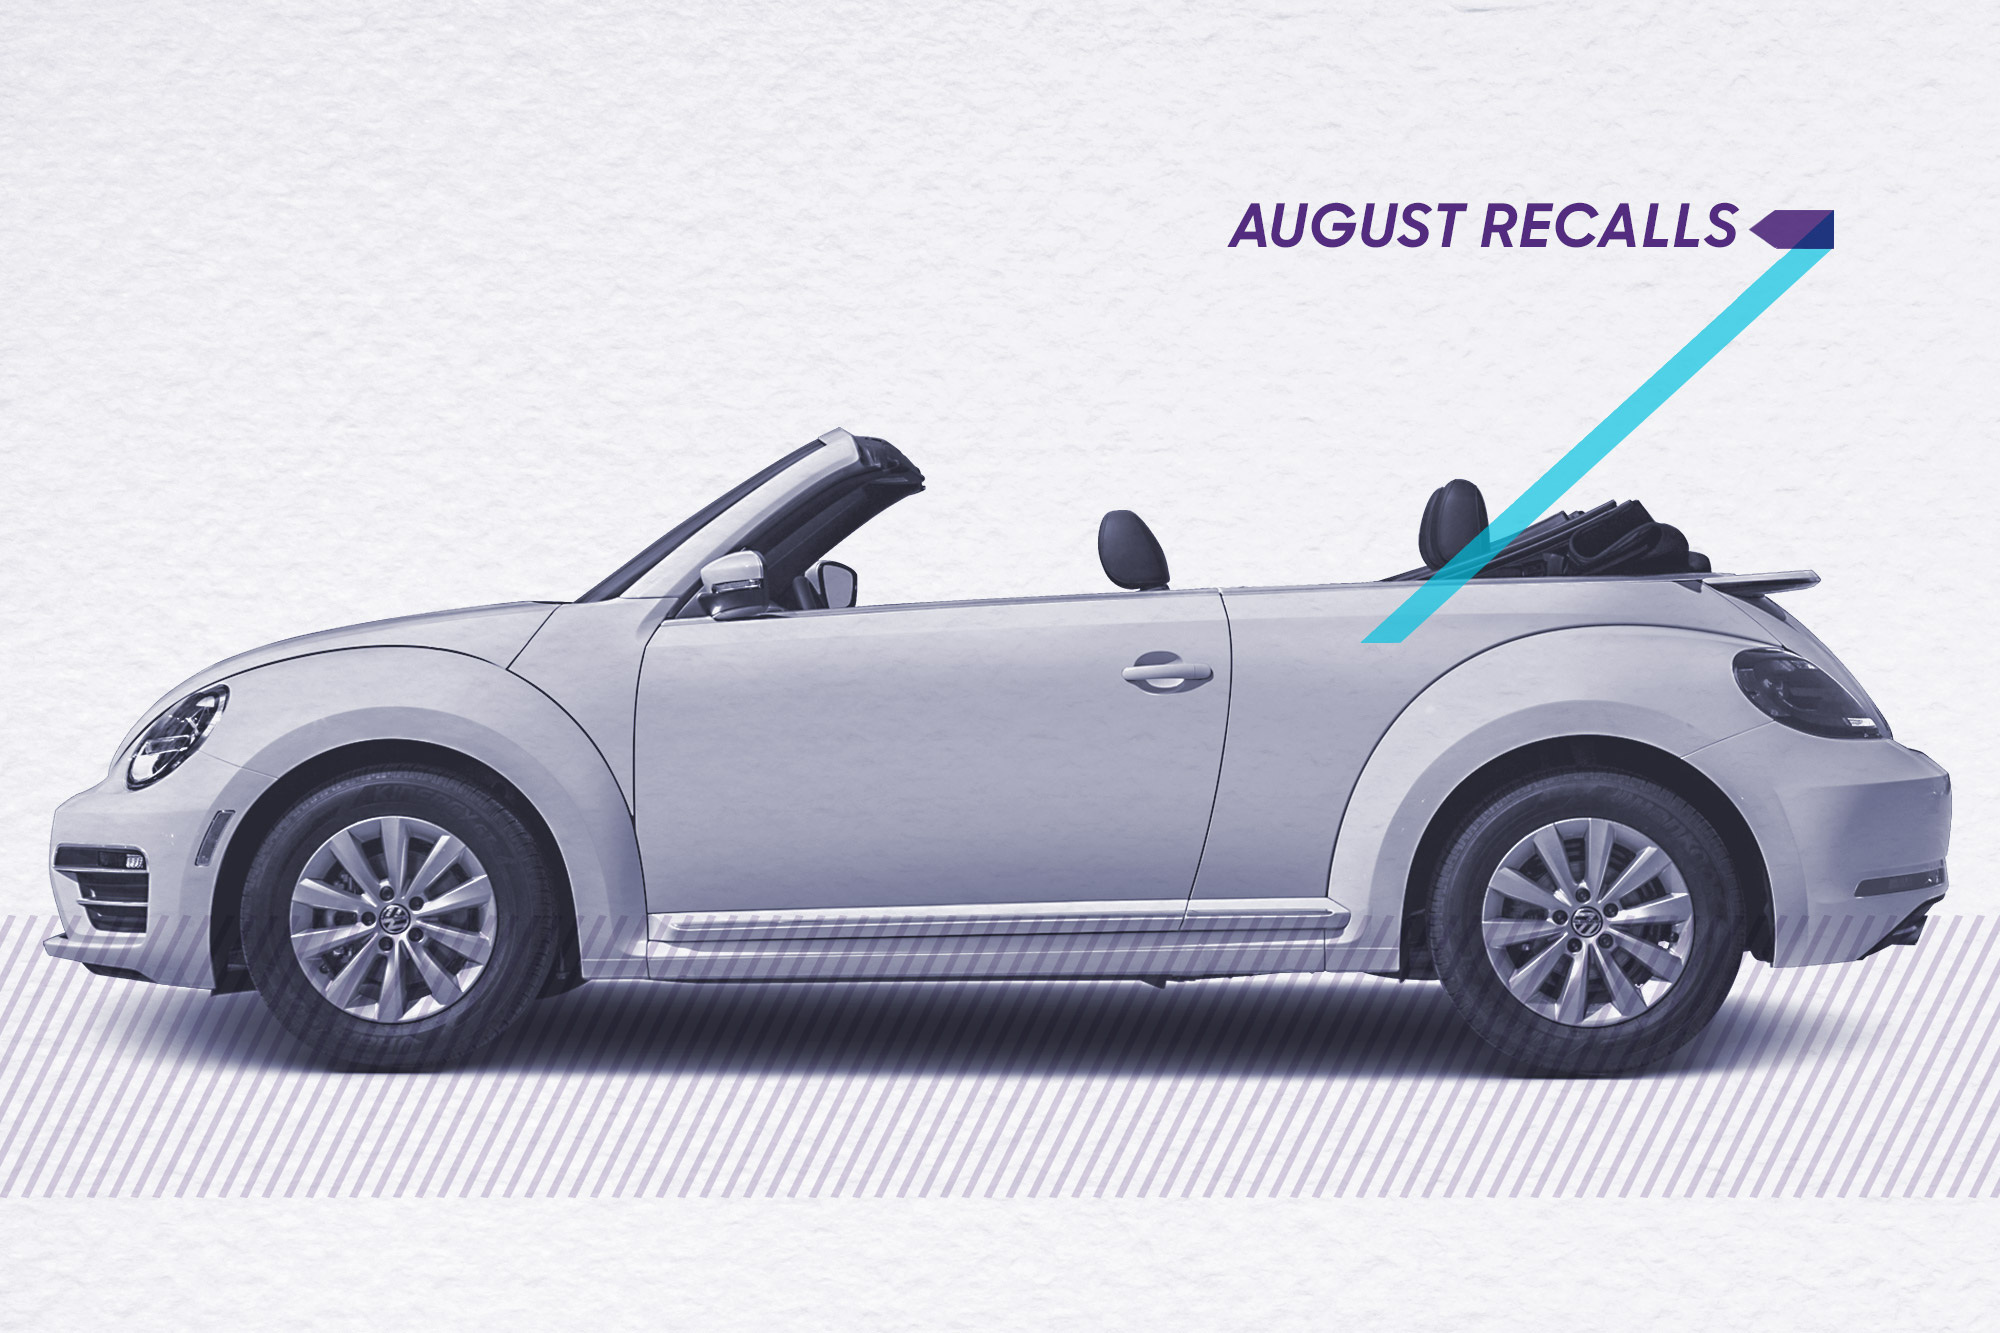 Recall Recap: The 5 Biggest Recalls in August 2019